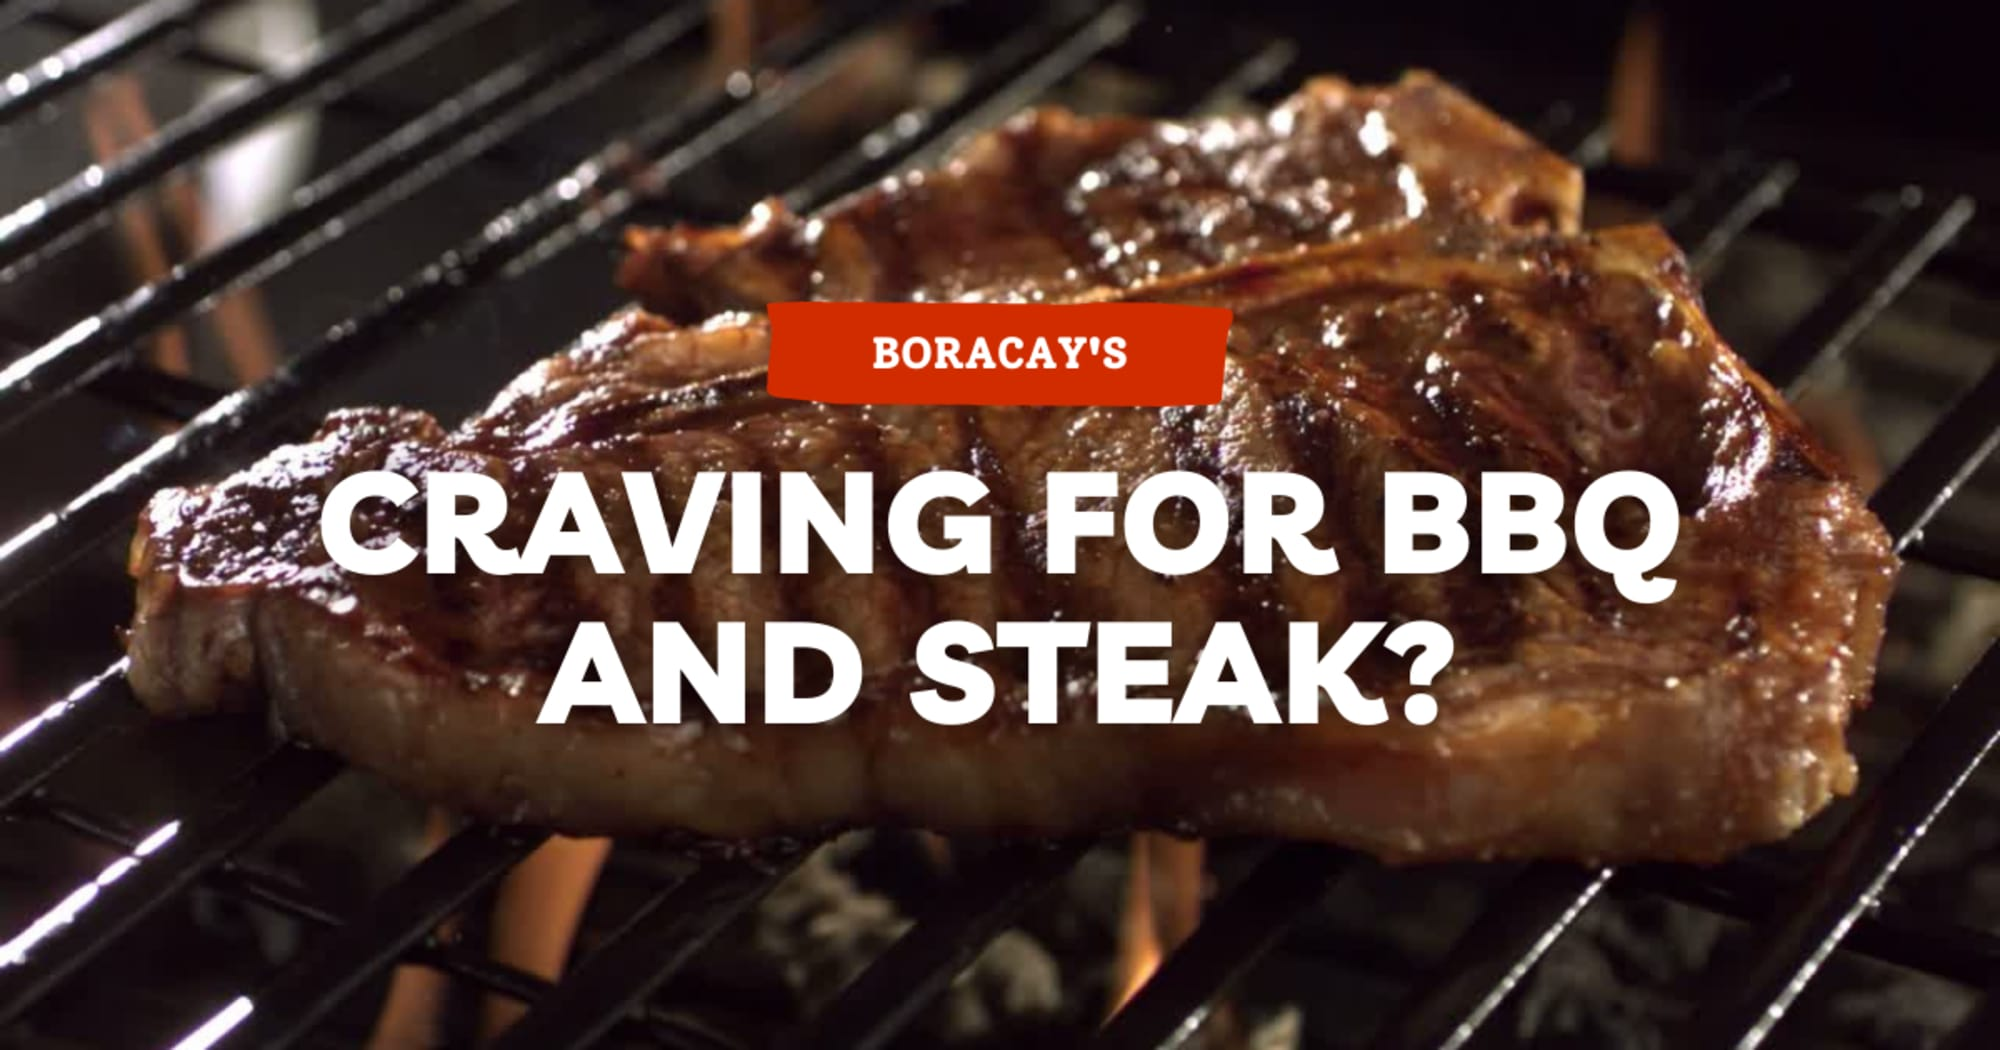 See what's at stake at Boracay's steakhouses